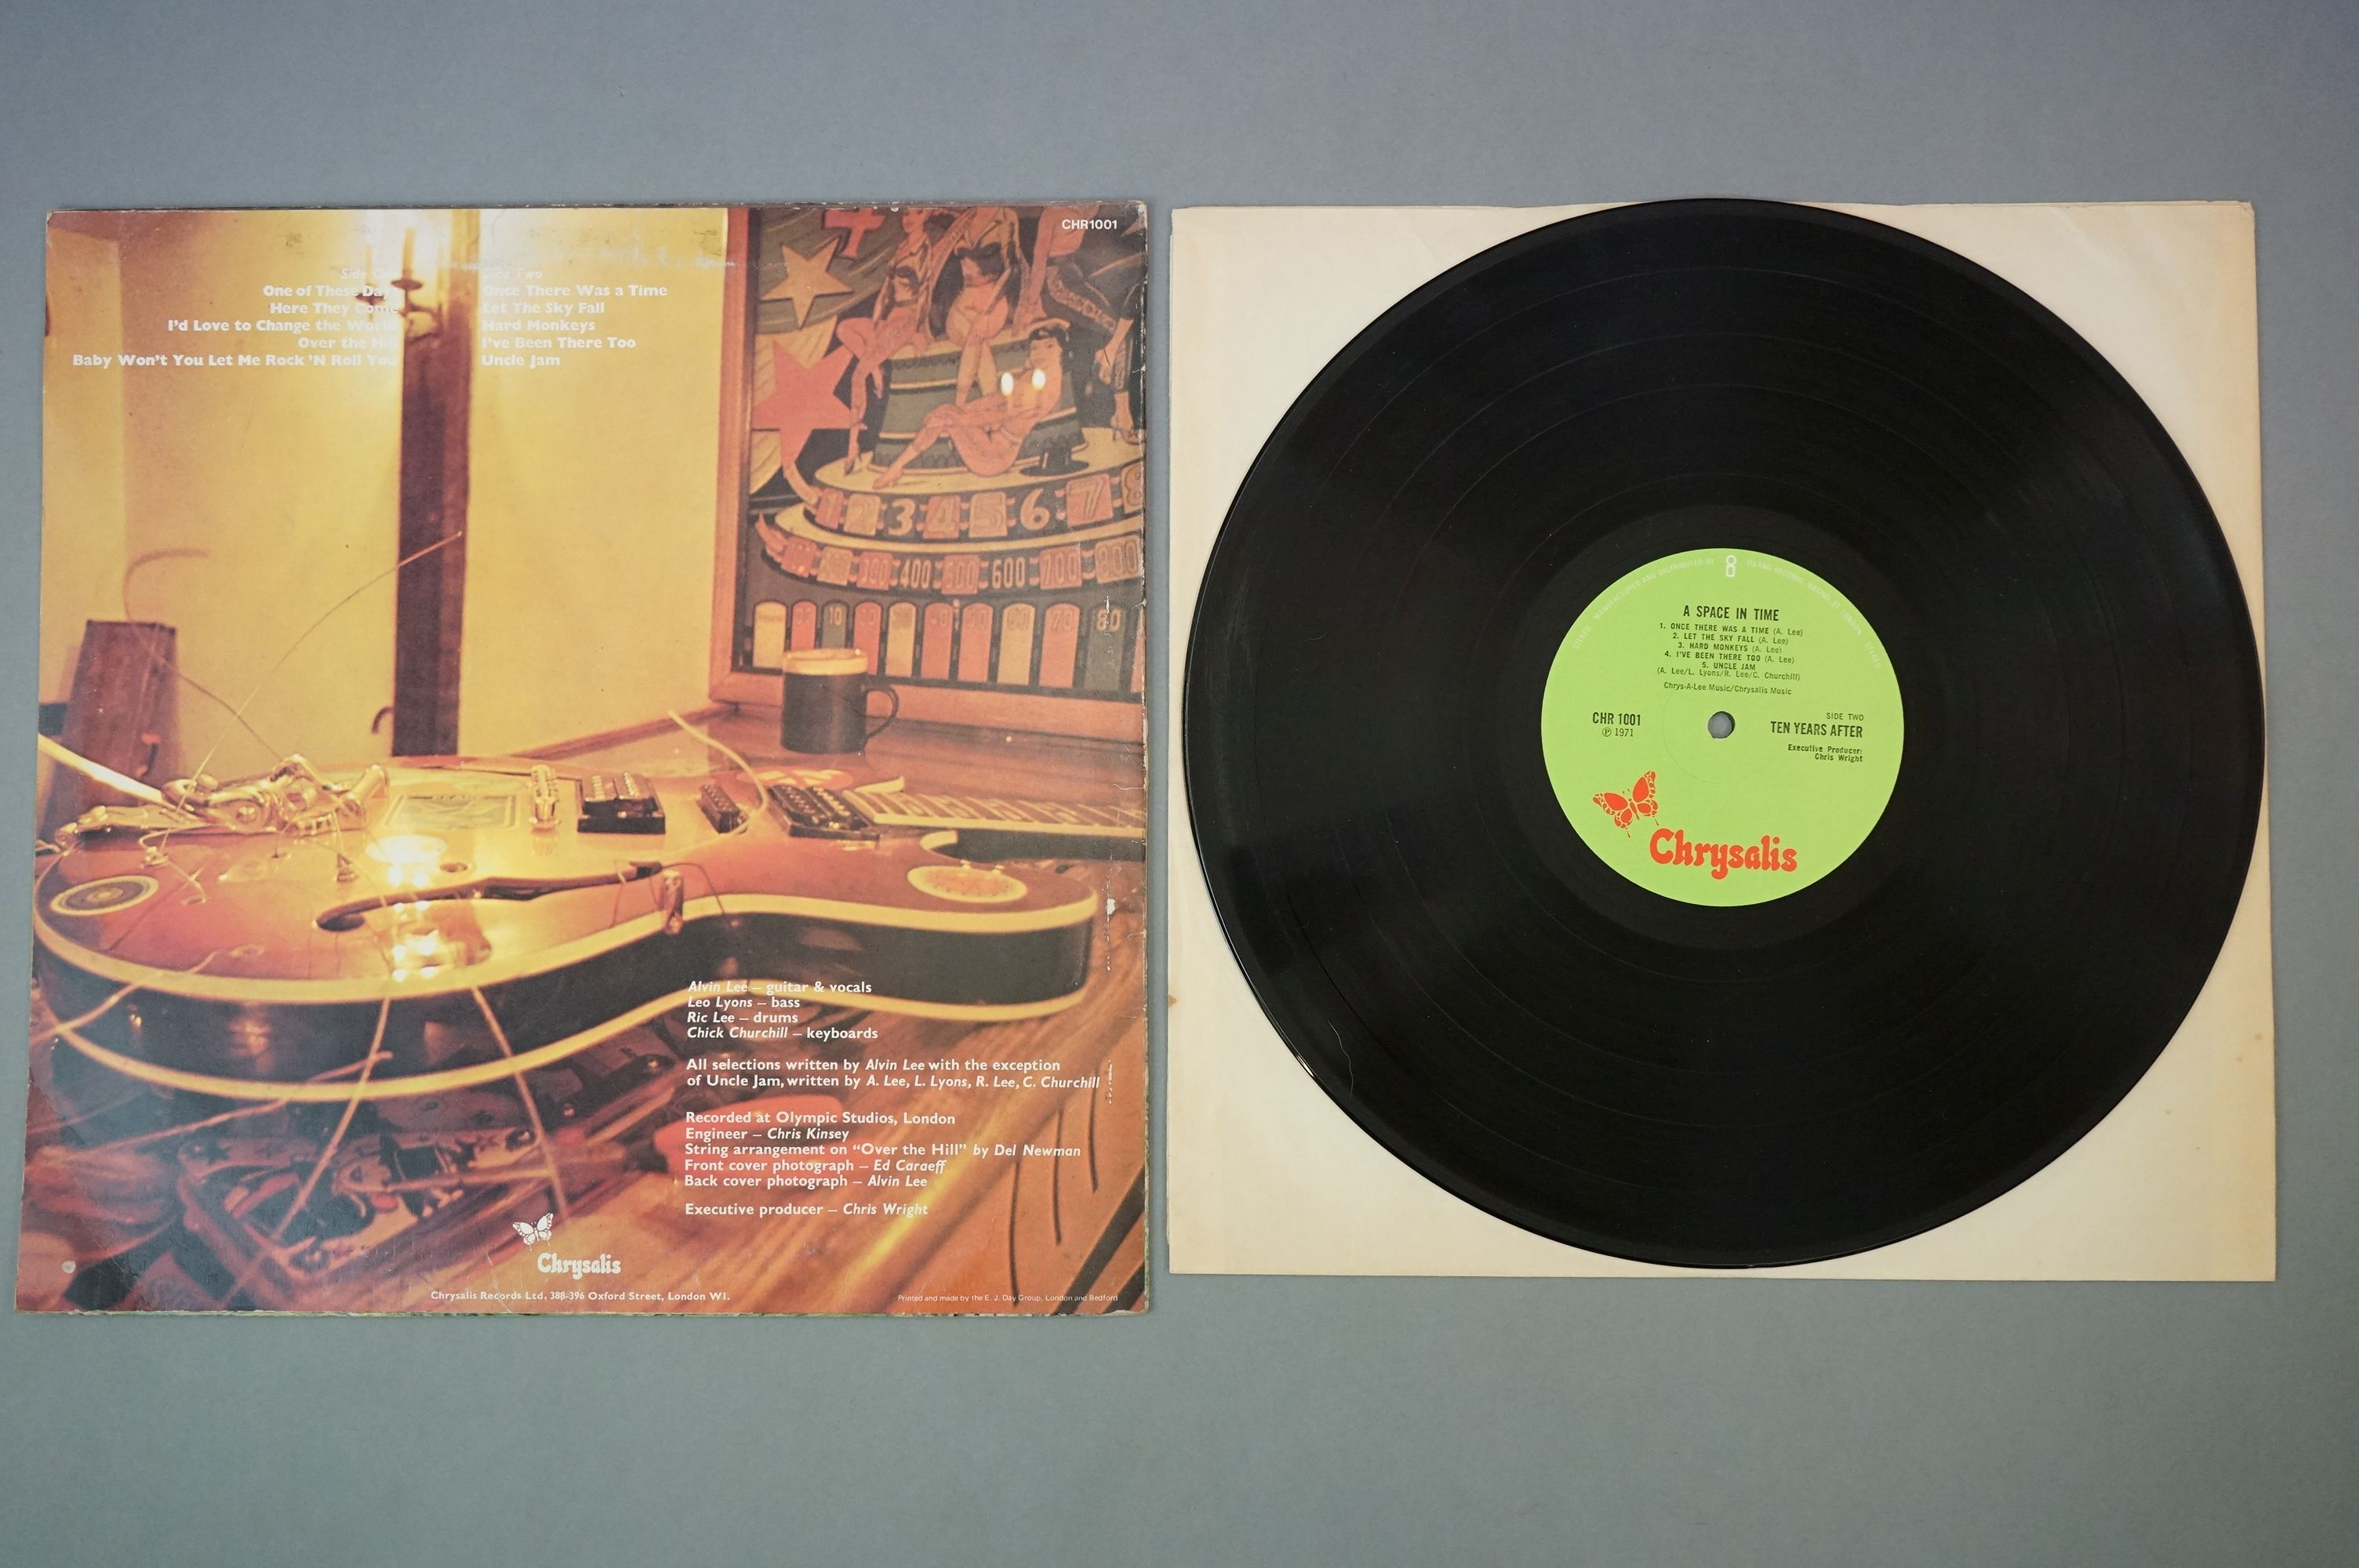 Vinyl - Ten Years After A Space In Time (CHR 1001) Green label with manufactured and distributed - Image 3 of 4